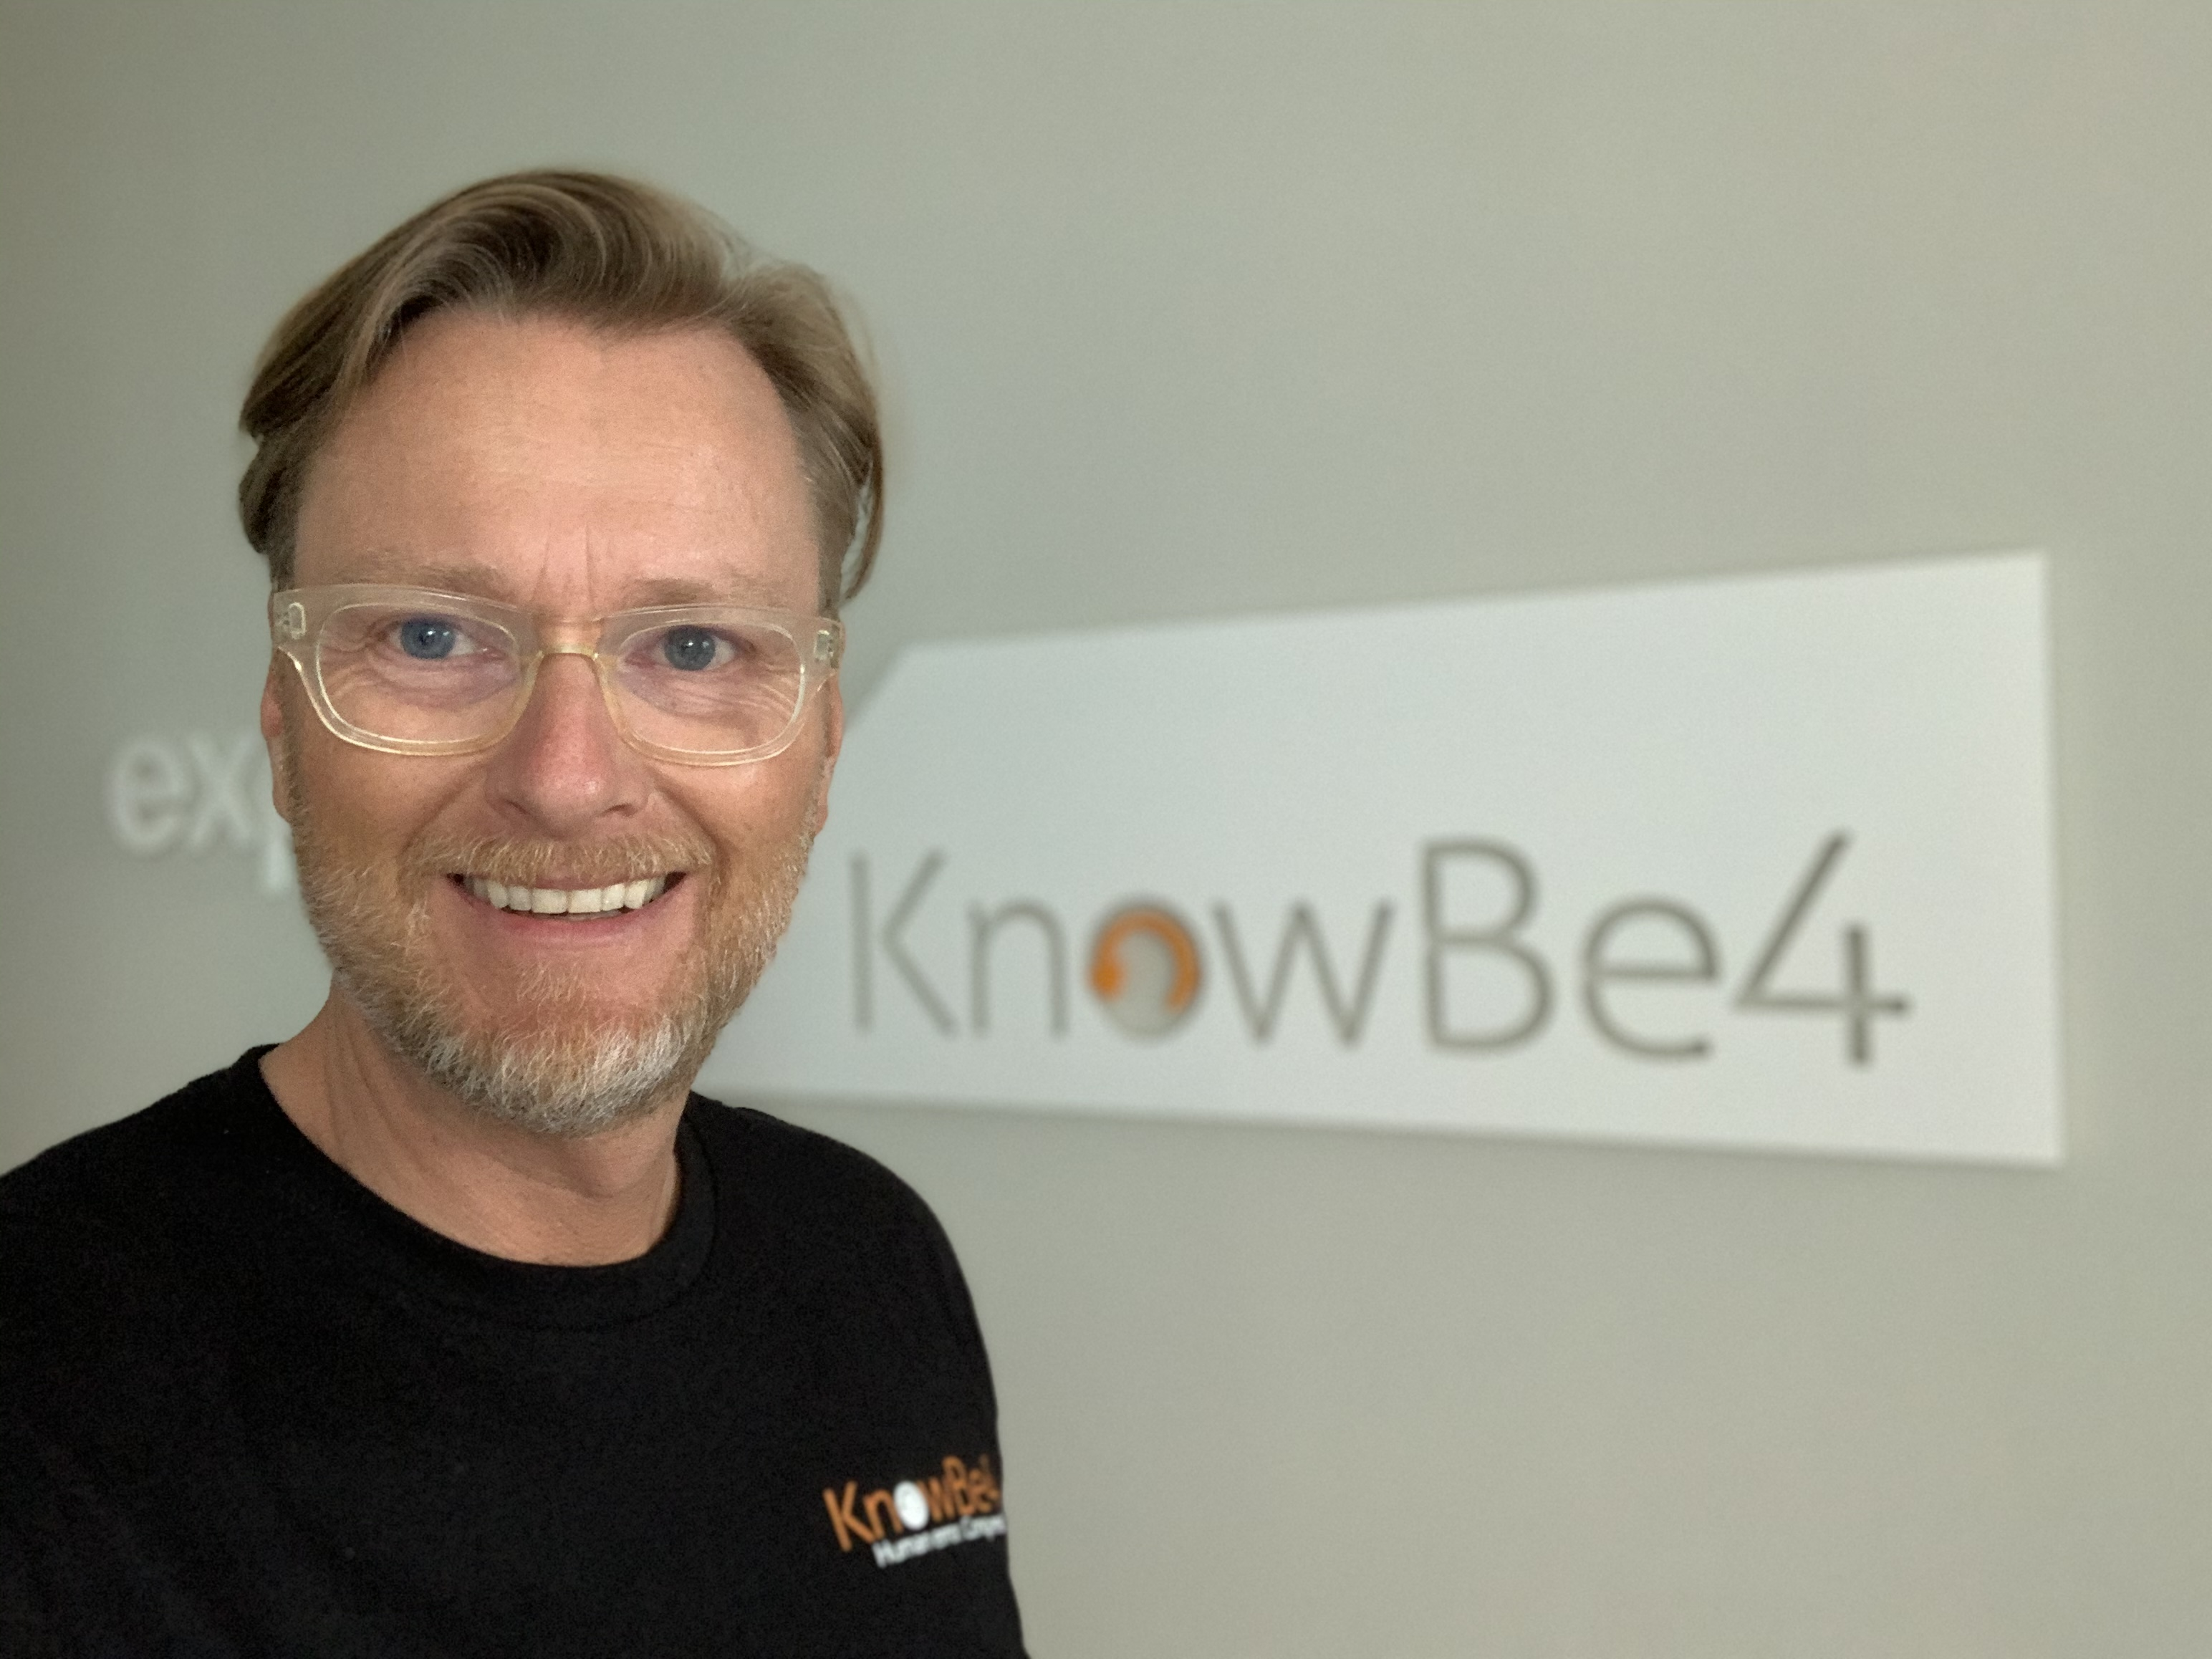 KnowBe4 Hires Dietmar Giese as New Managing Director for DACH